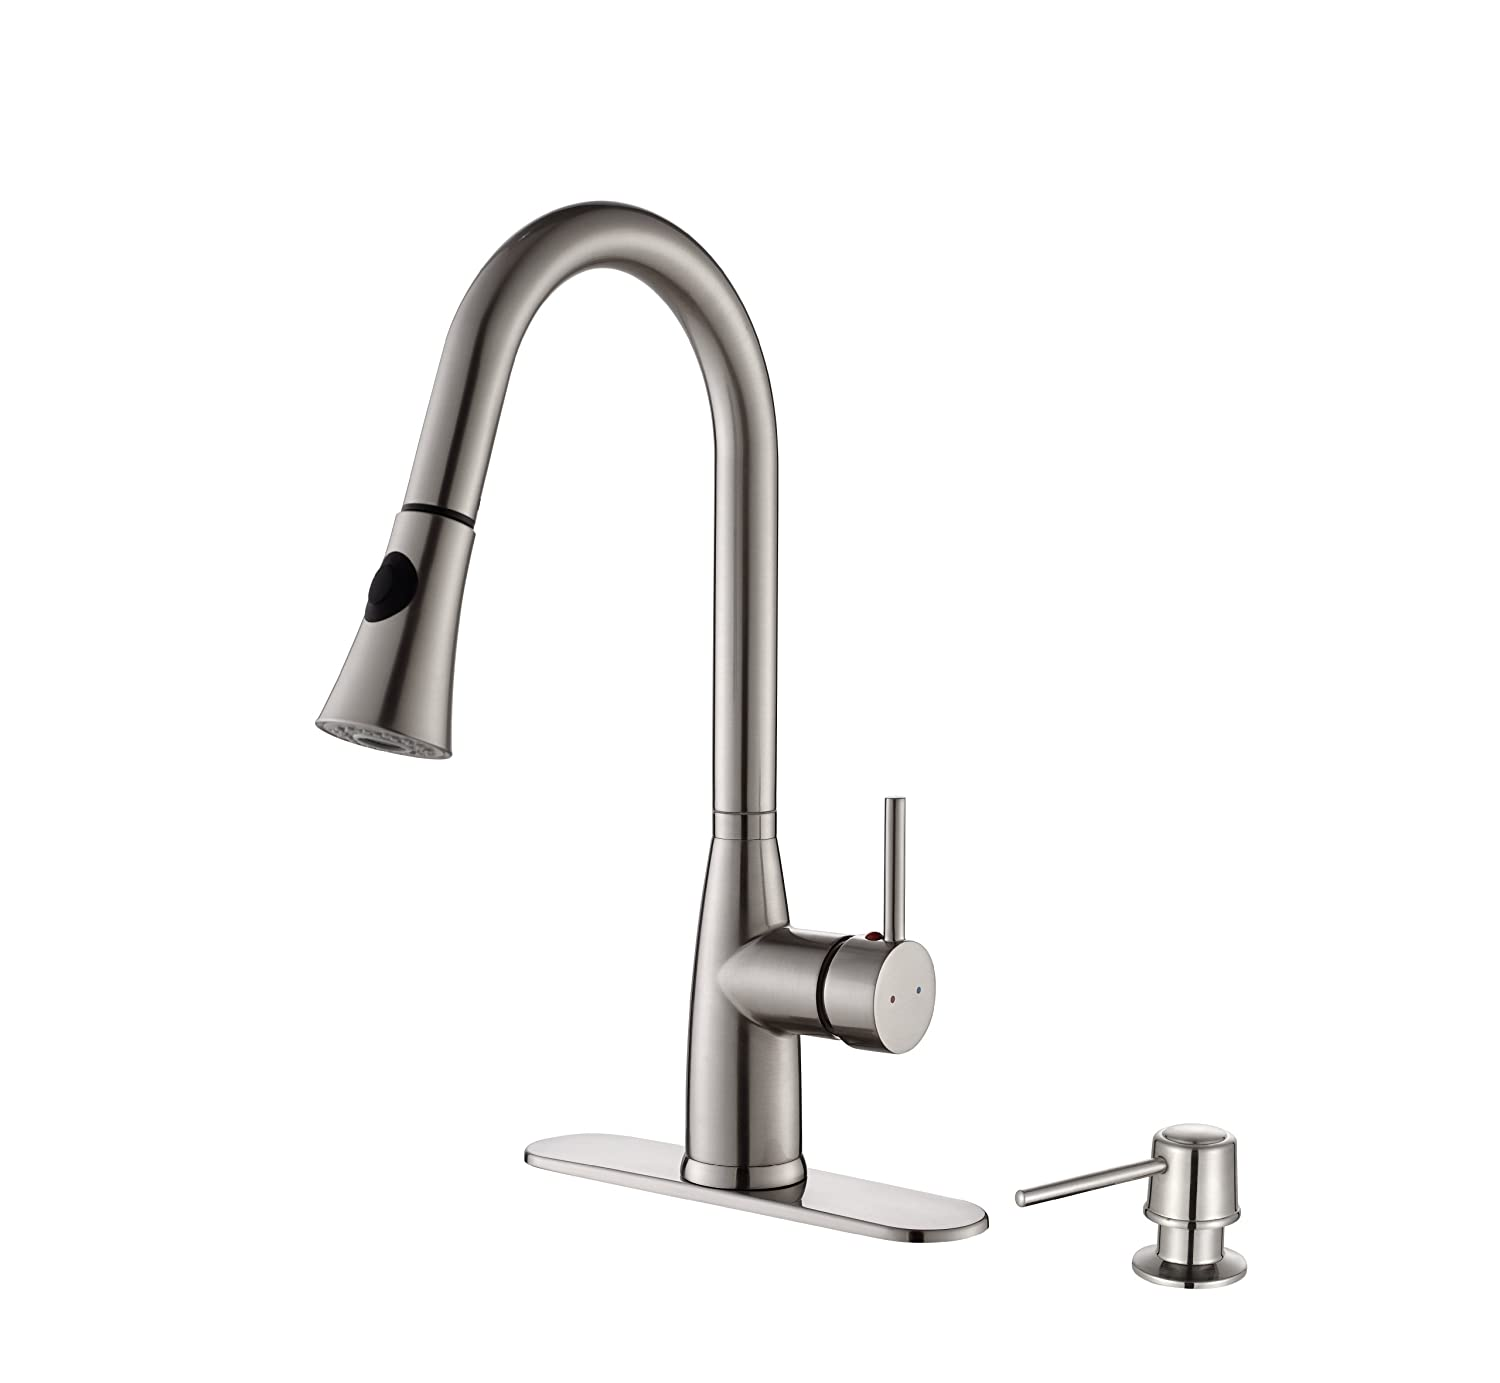 full commercial taps cheap pegasus size made out restaurant hole pull plumber faucet faucets sensational new kitchen industrial american of sink wholesale